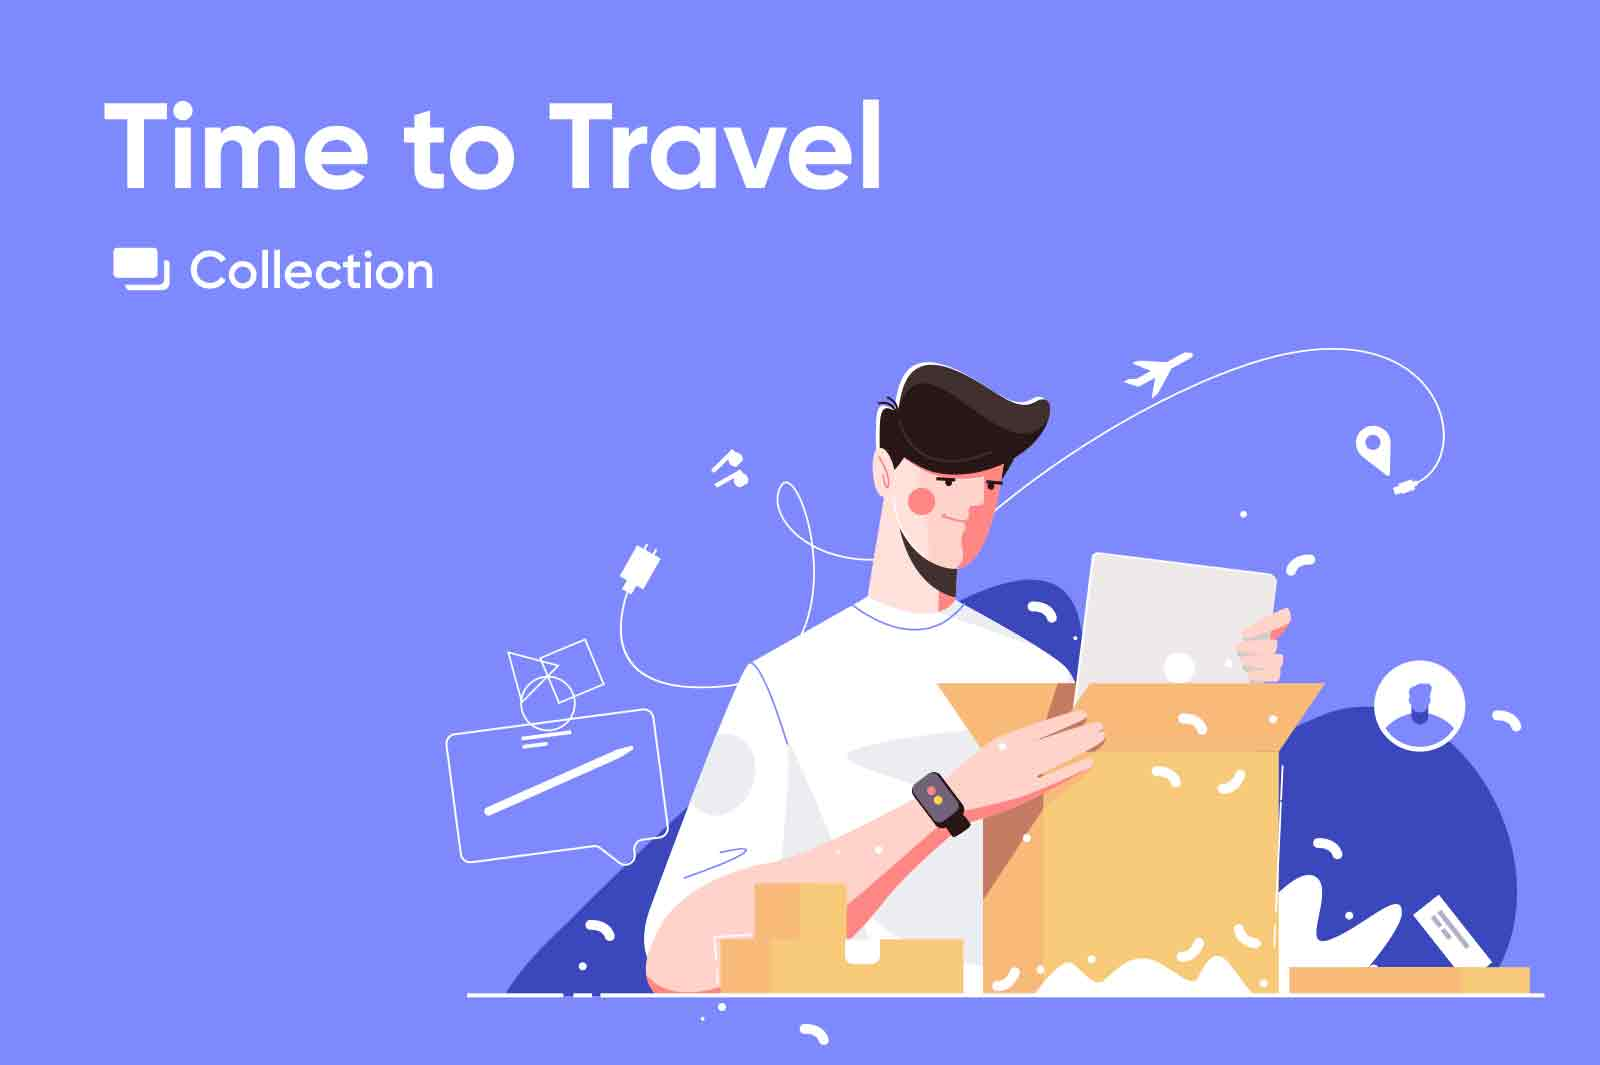 Travel and e-commecrce theme related illustrations. Airport, flights, safari and famous destinations. Delivery, online shopping.